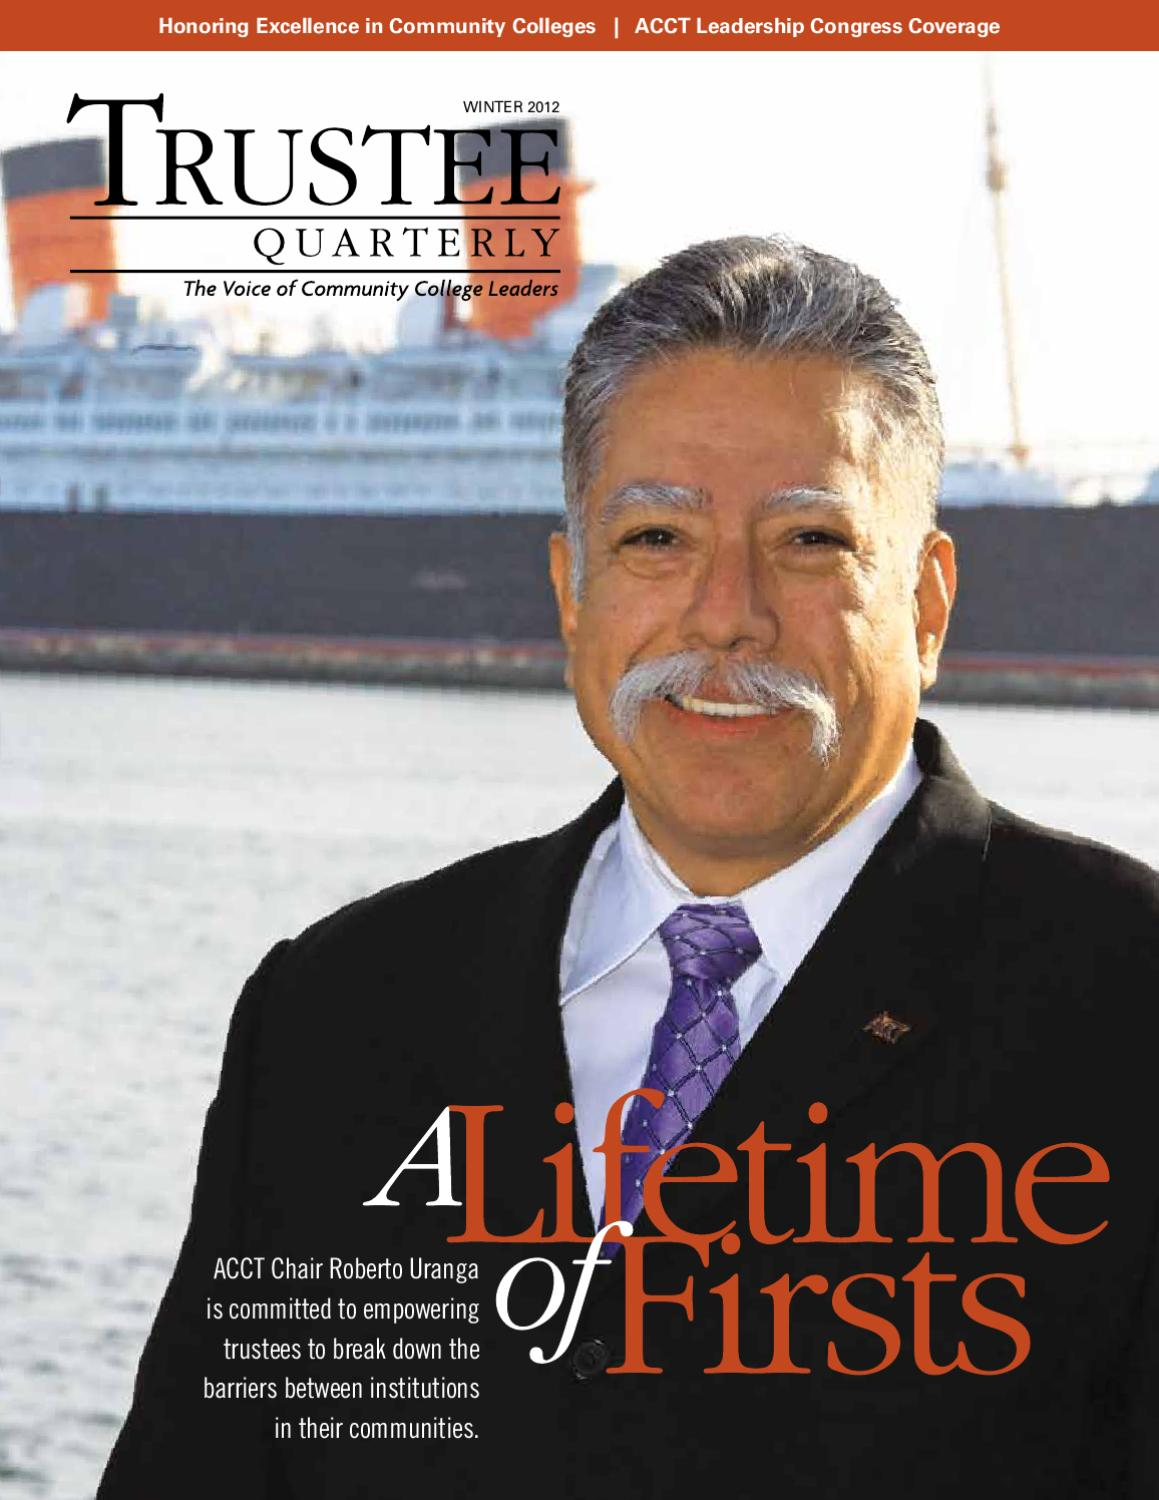 acct trustee quarterly winter 2012 by moire marketing partners issuu